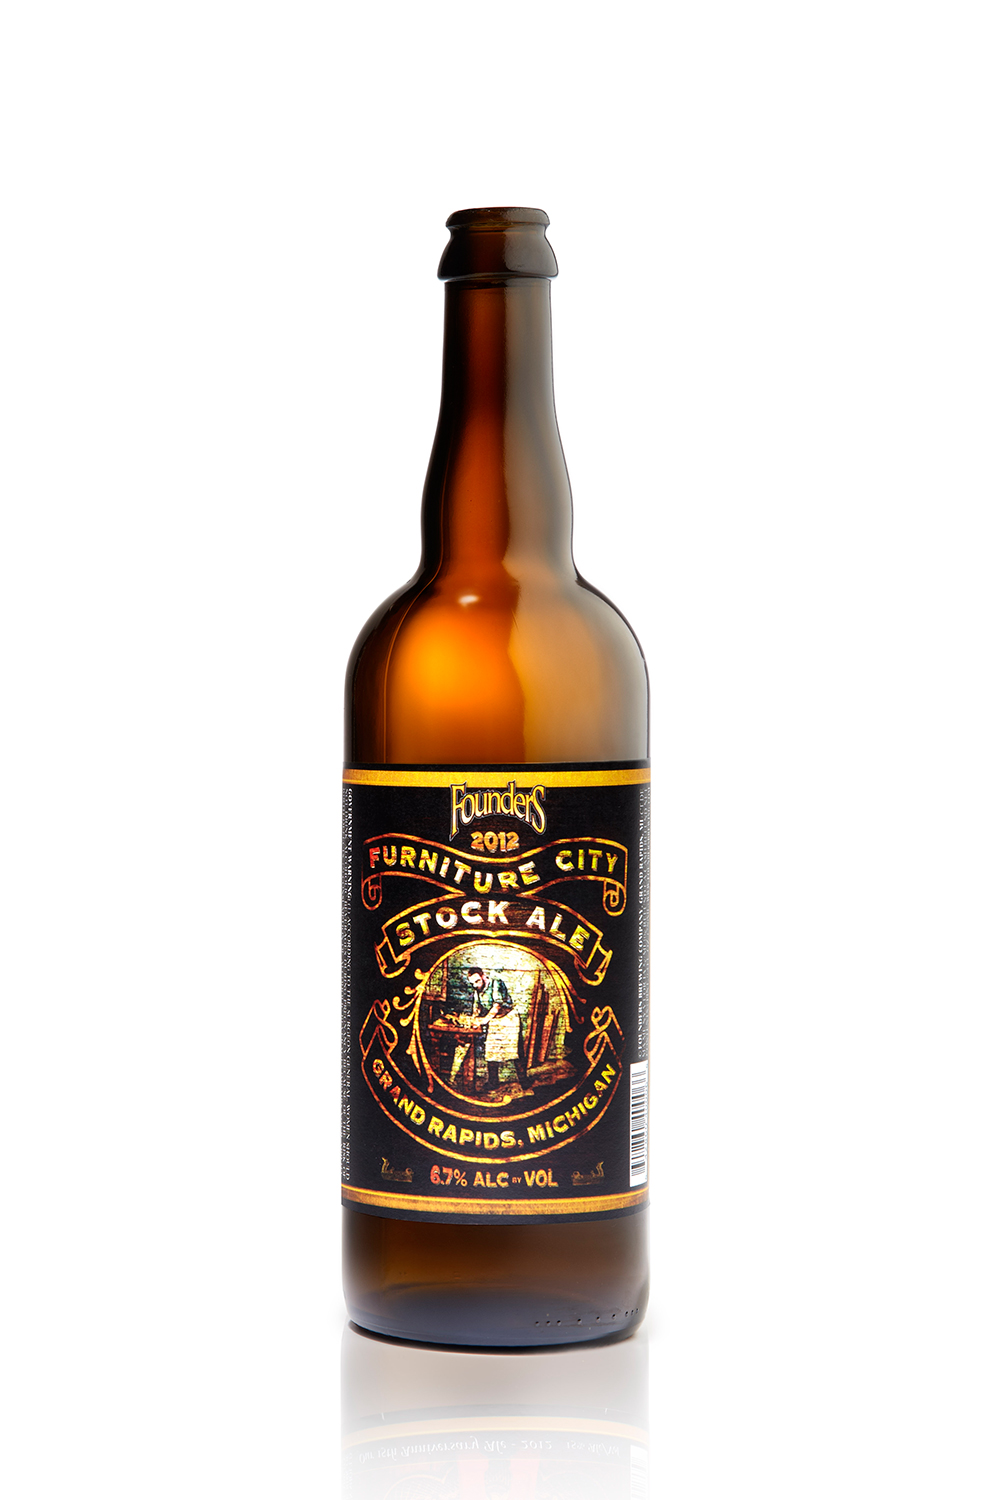 Furniture City Stock Ale bottle shot